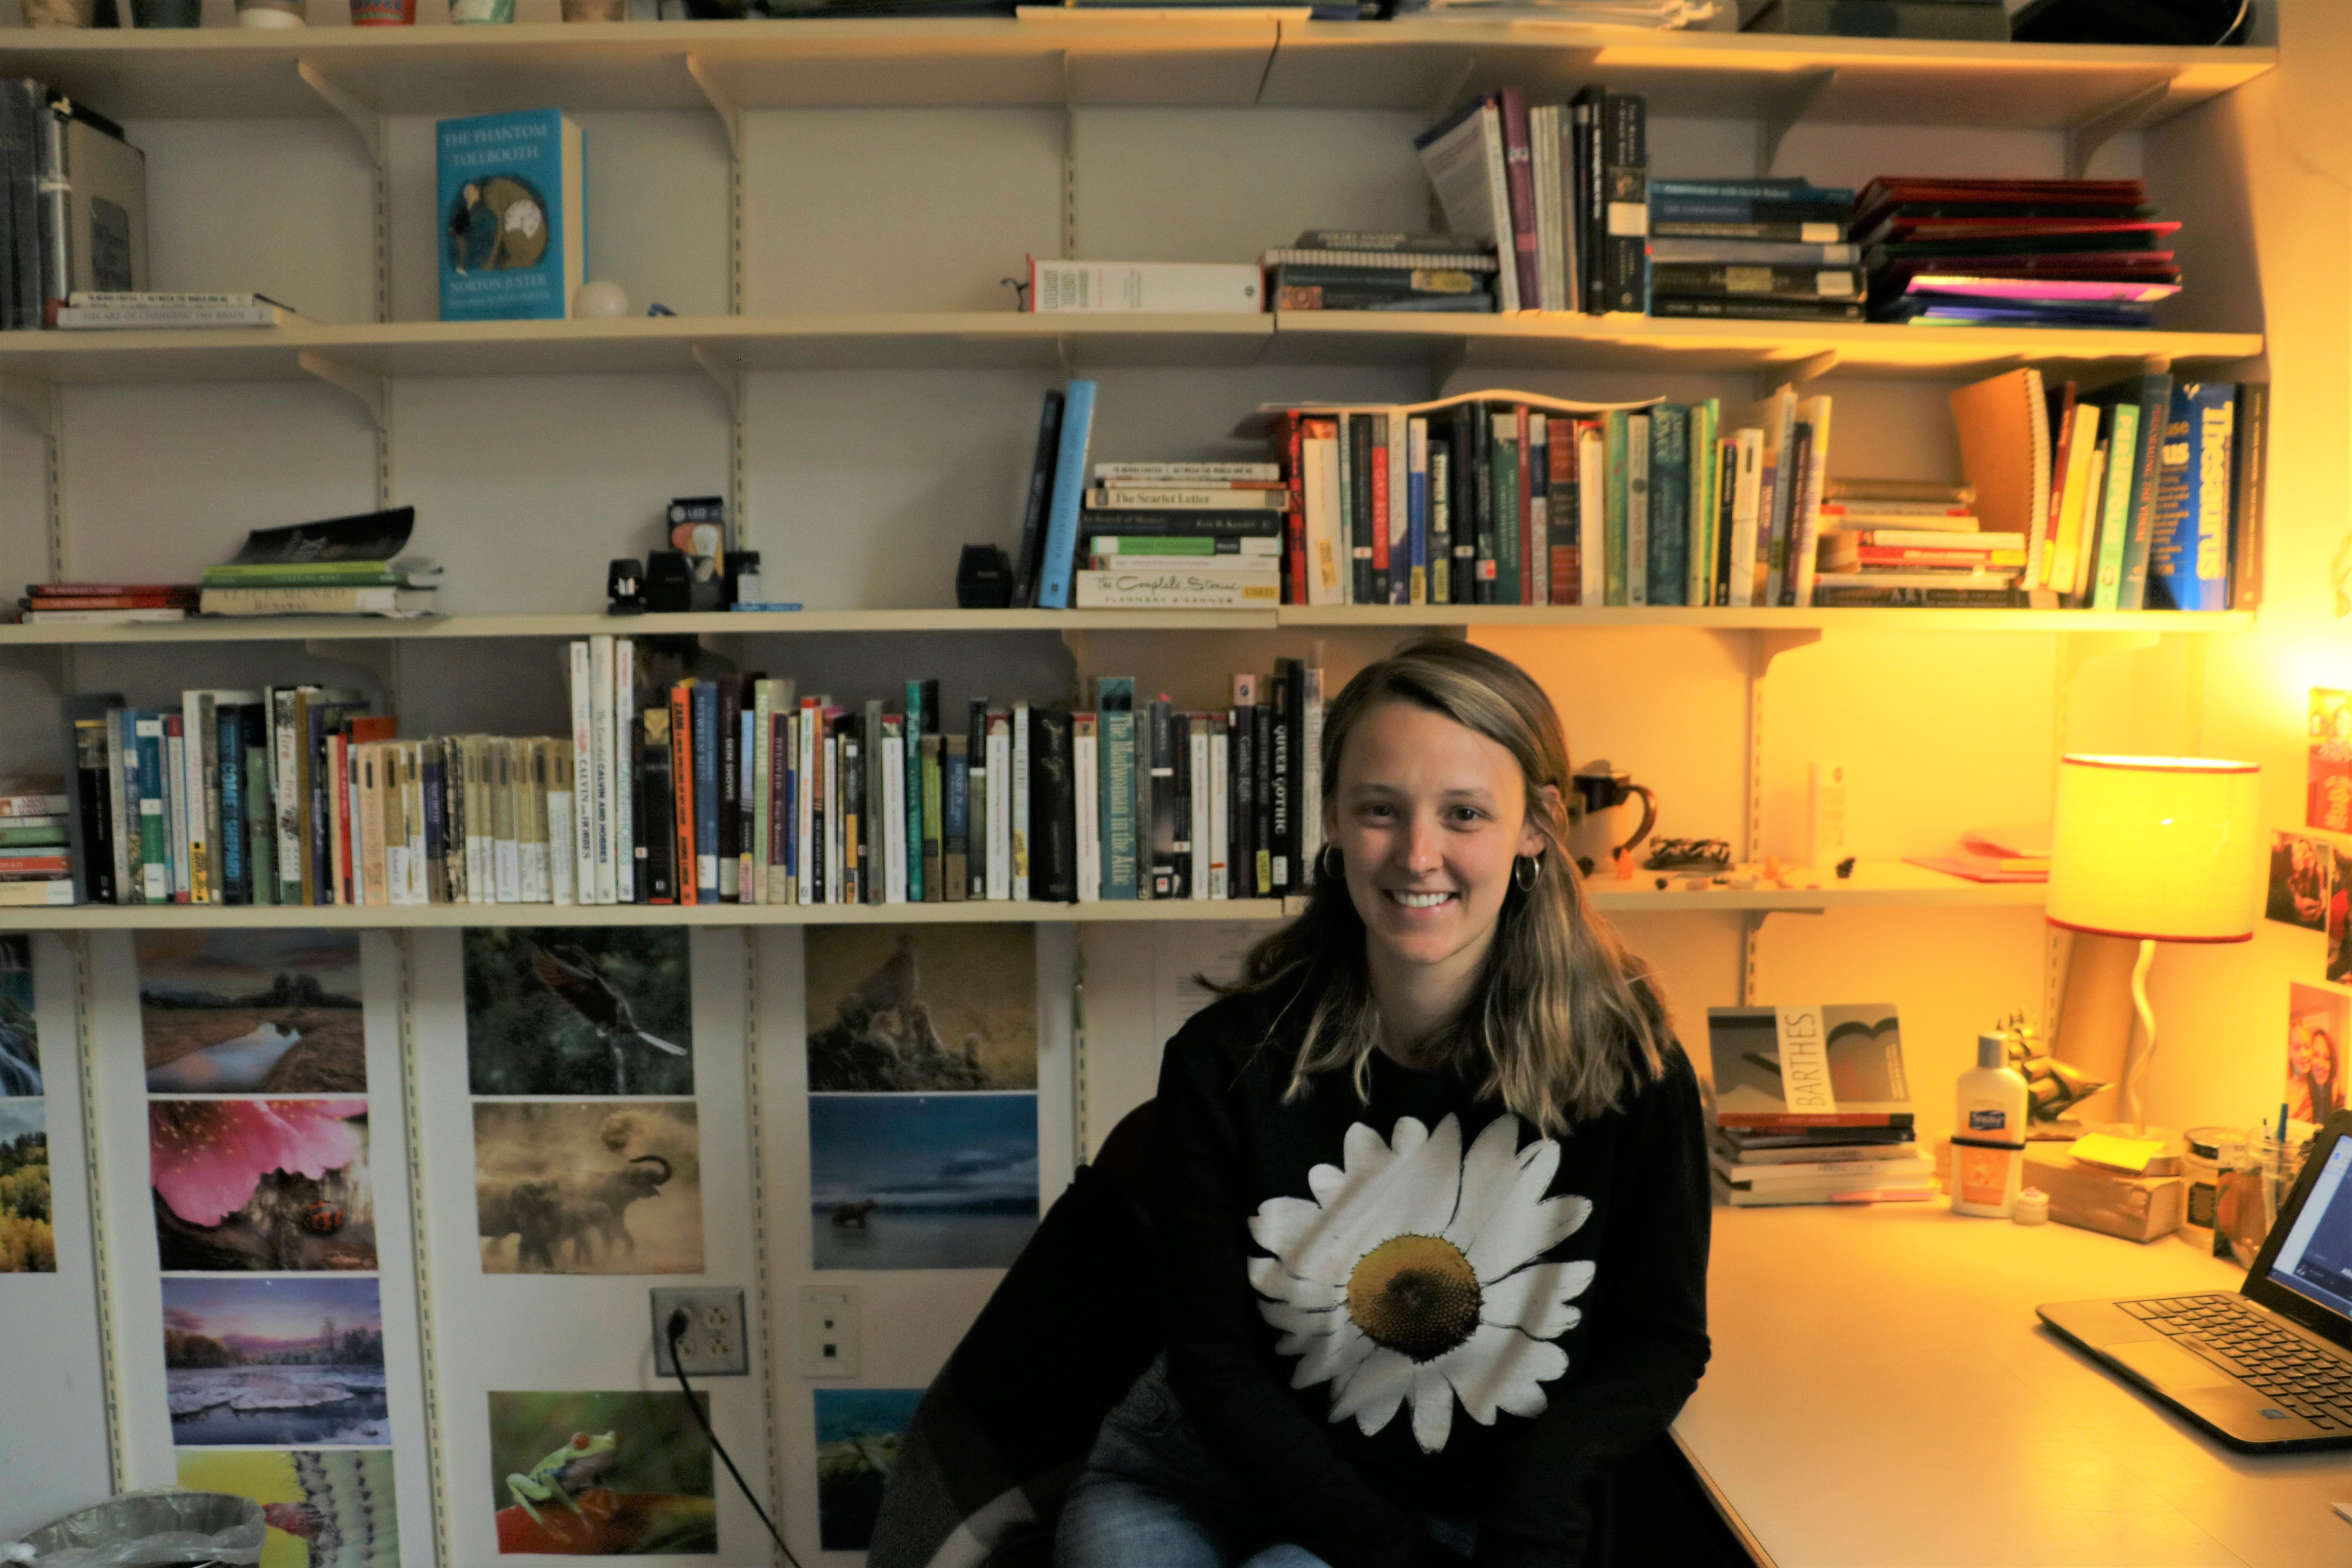 Casey O'Reilly, shoulder length light brown hair, smiling at the camera and sitting at her desk in front of a bookcase